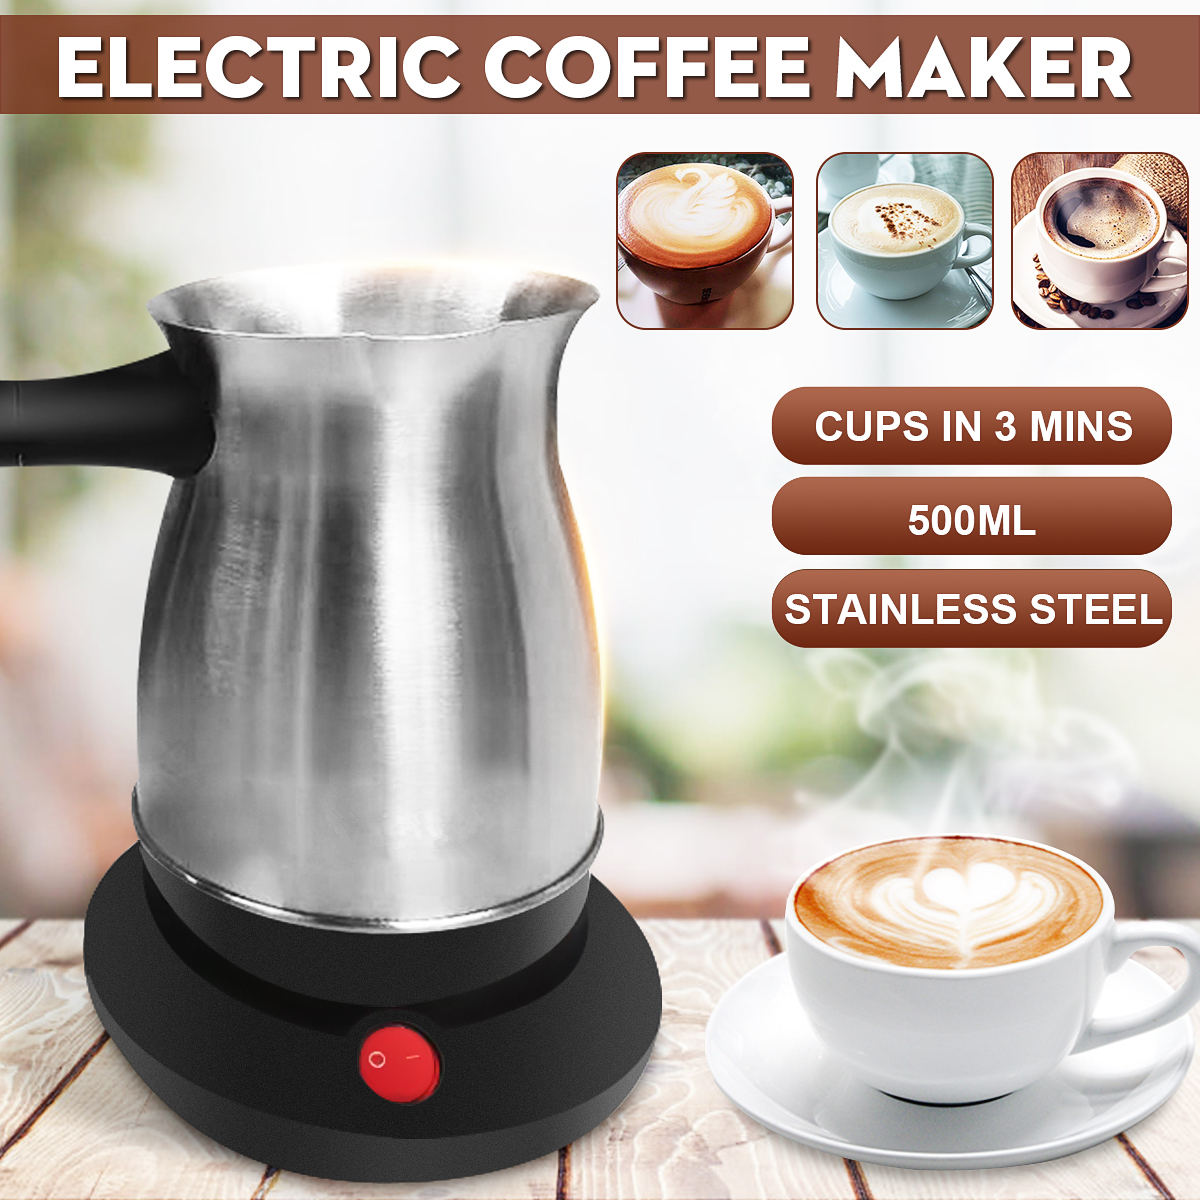 600W 220V Coffee Machine 304 Stainless Steel Turkey Coffee Maker Electrical Coffee Pot Coffee Kettle For Home Office